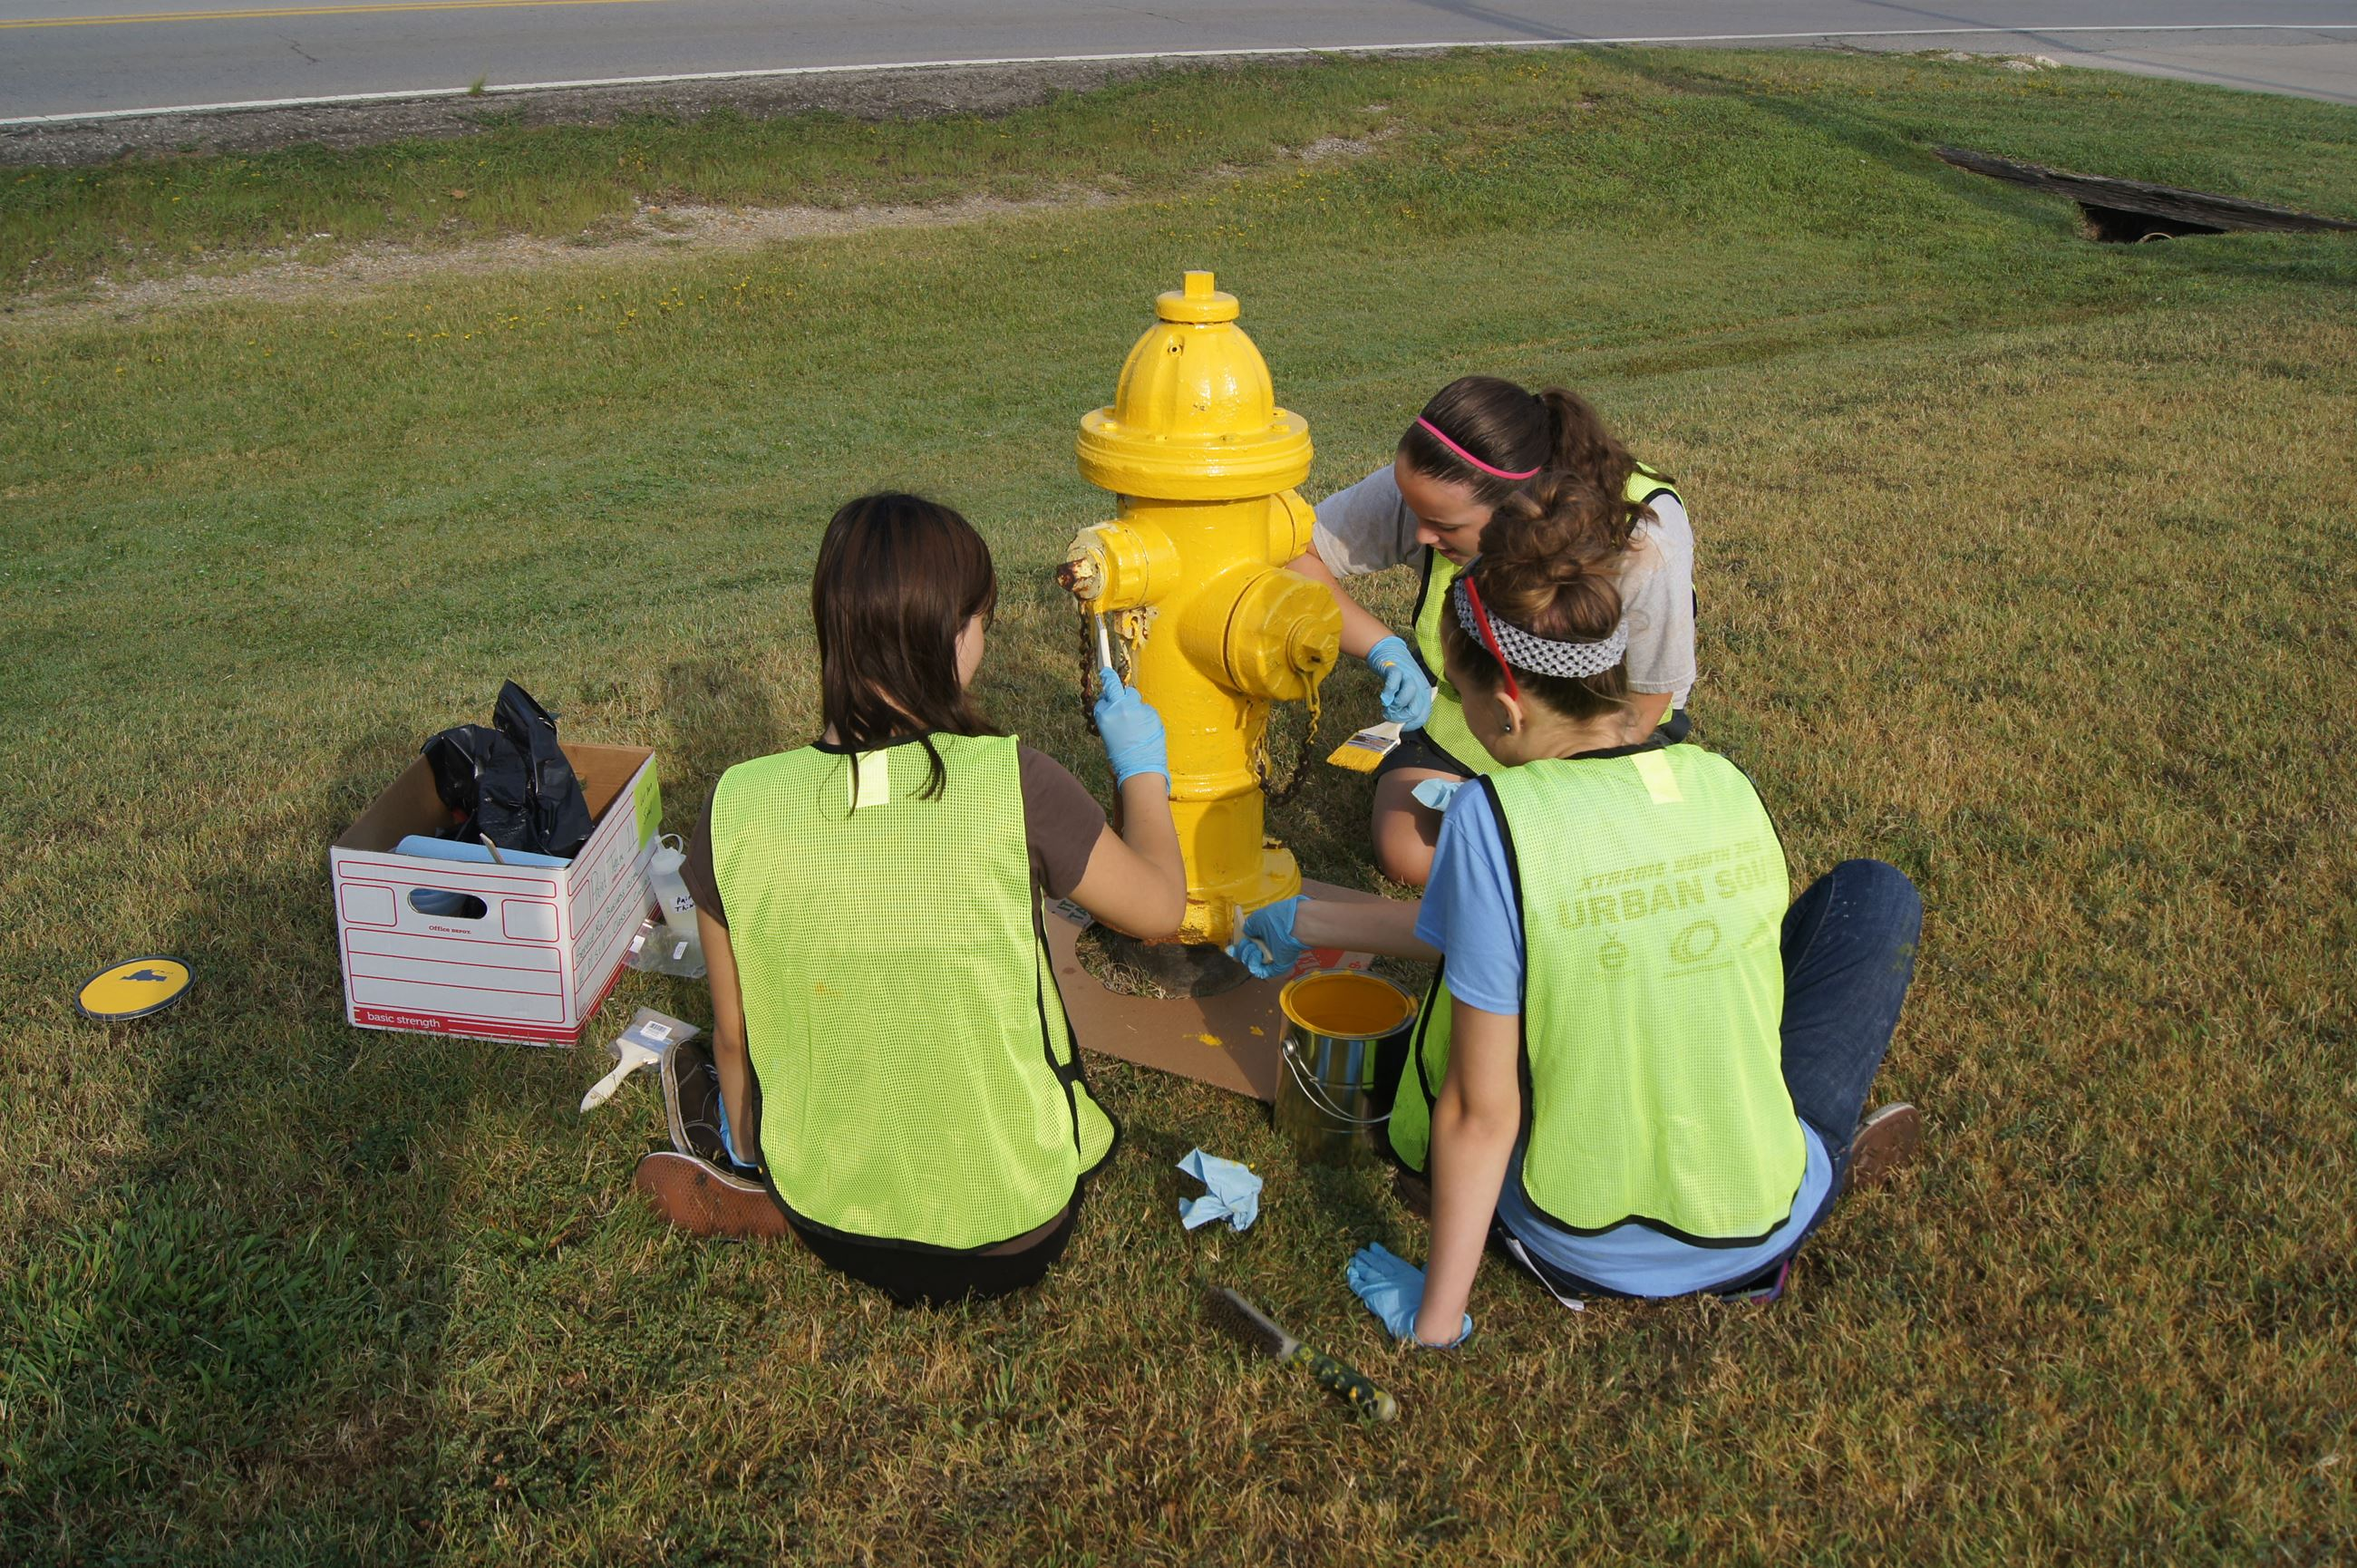 Volunteers painting fire hydrant